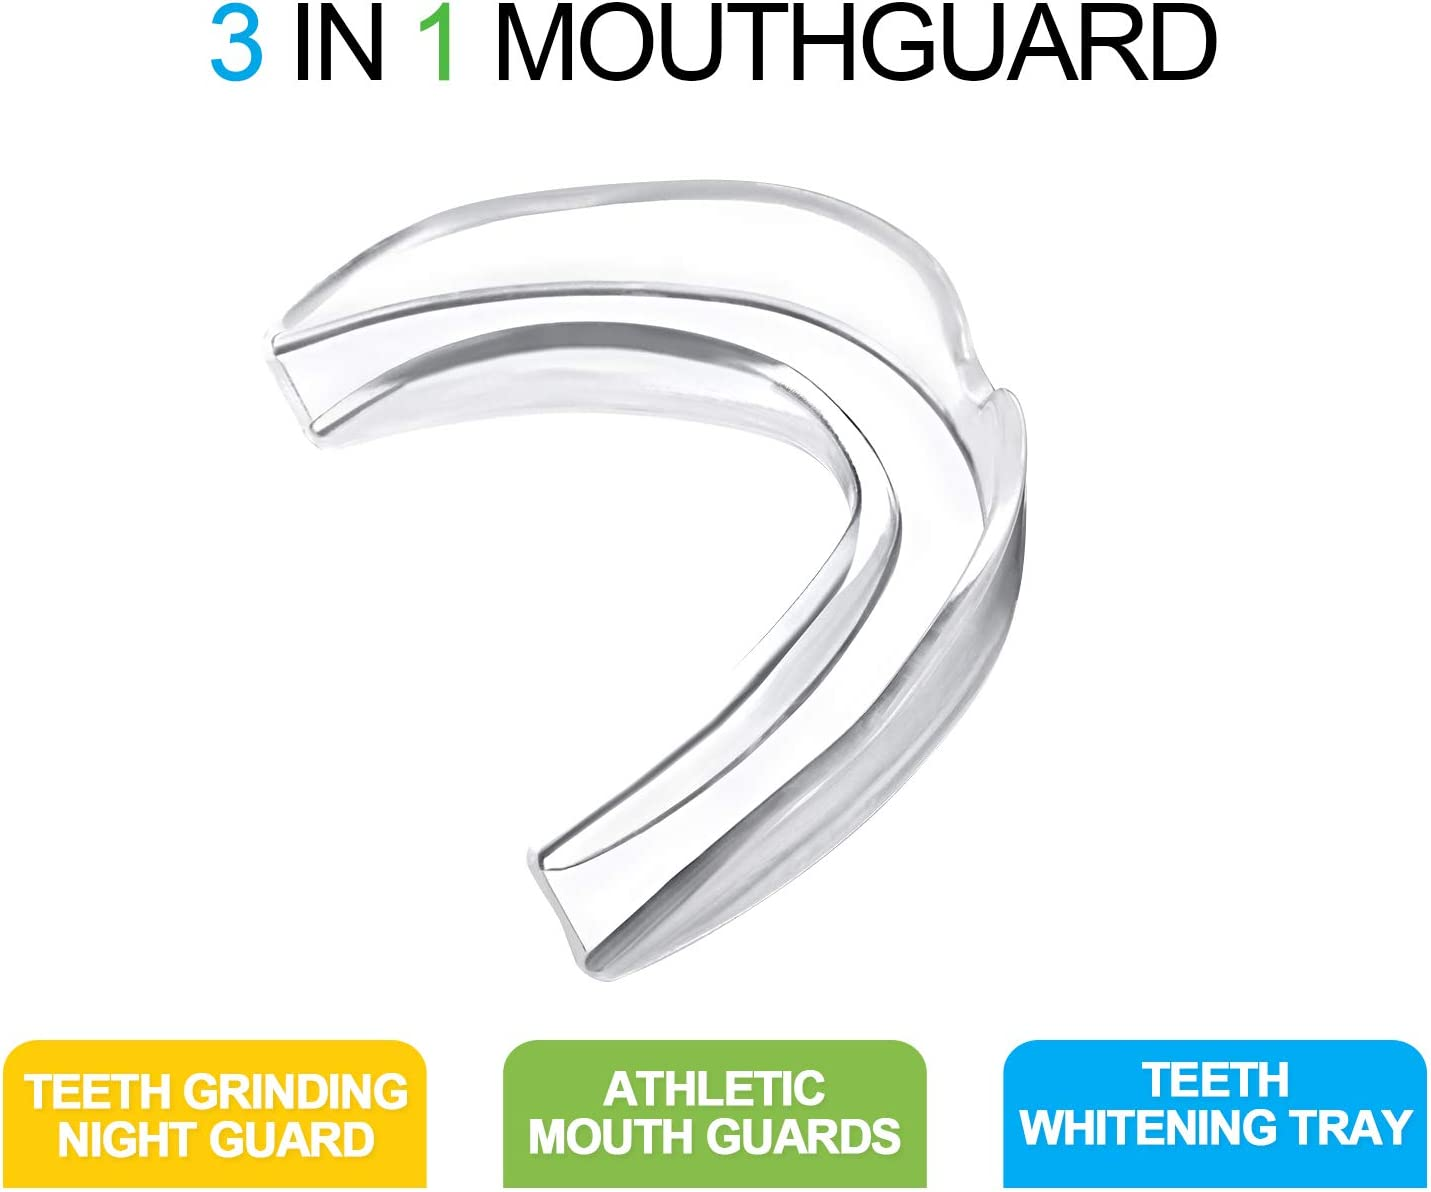 Zhanmai Sport Mouth Guards Teeth Armor Athletic Mouthguards for Football Boxing Basketball Hockey Taekwondo Kickboxing Fit Any Mouth Size Custom Fit